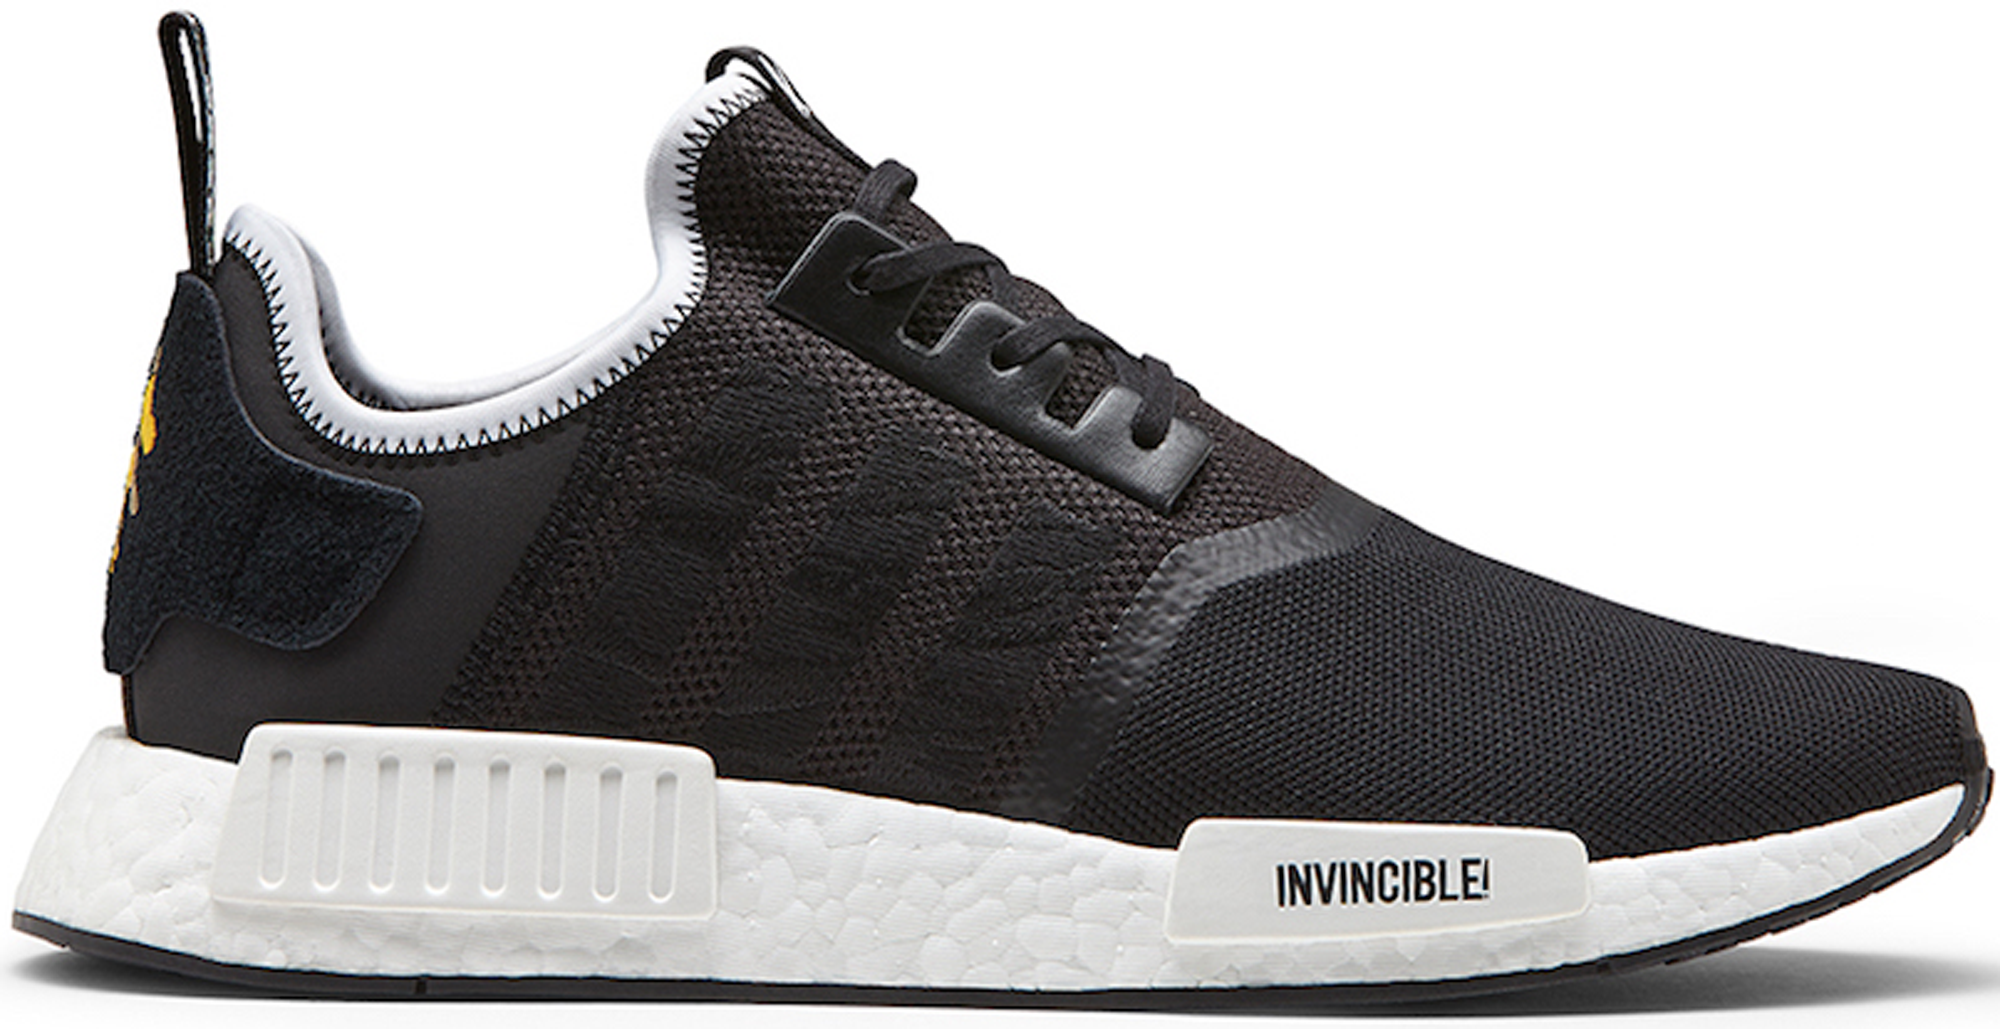 First Look At The Neighborhood x Invincible x adidas NMD R1